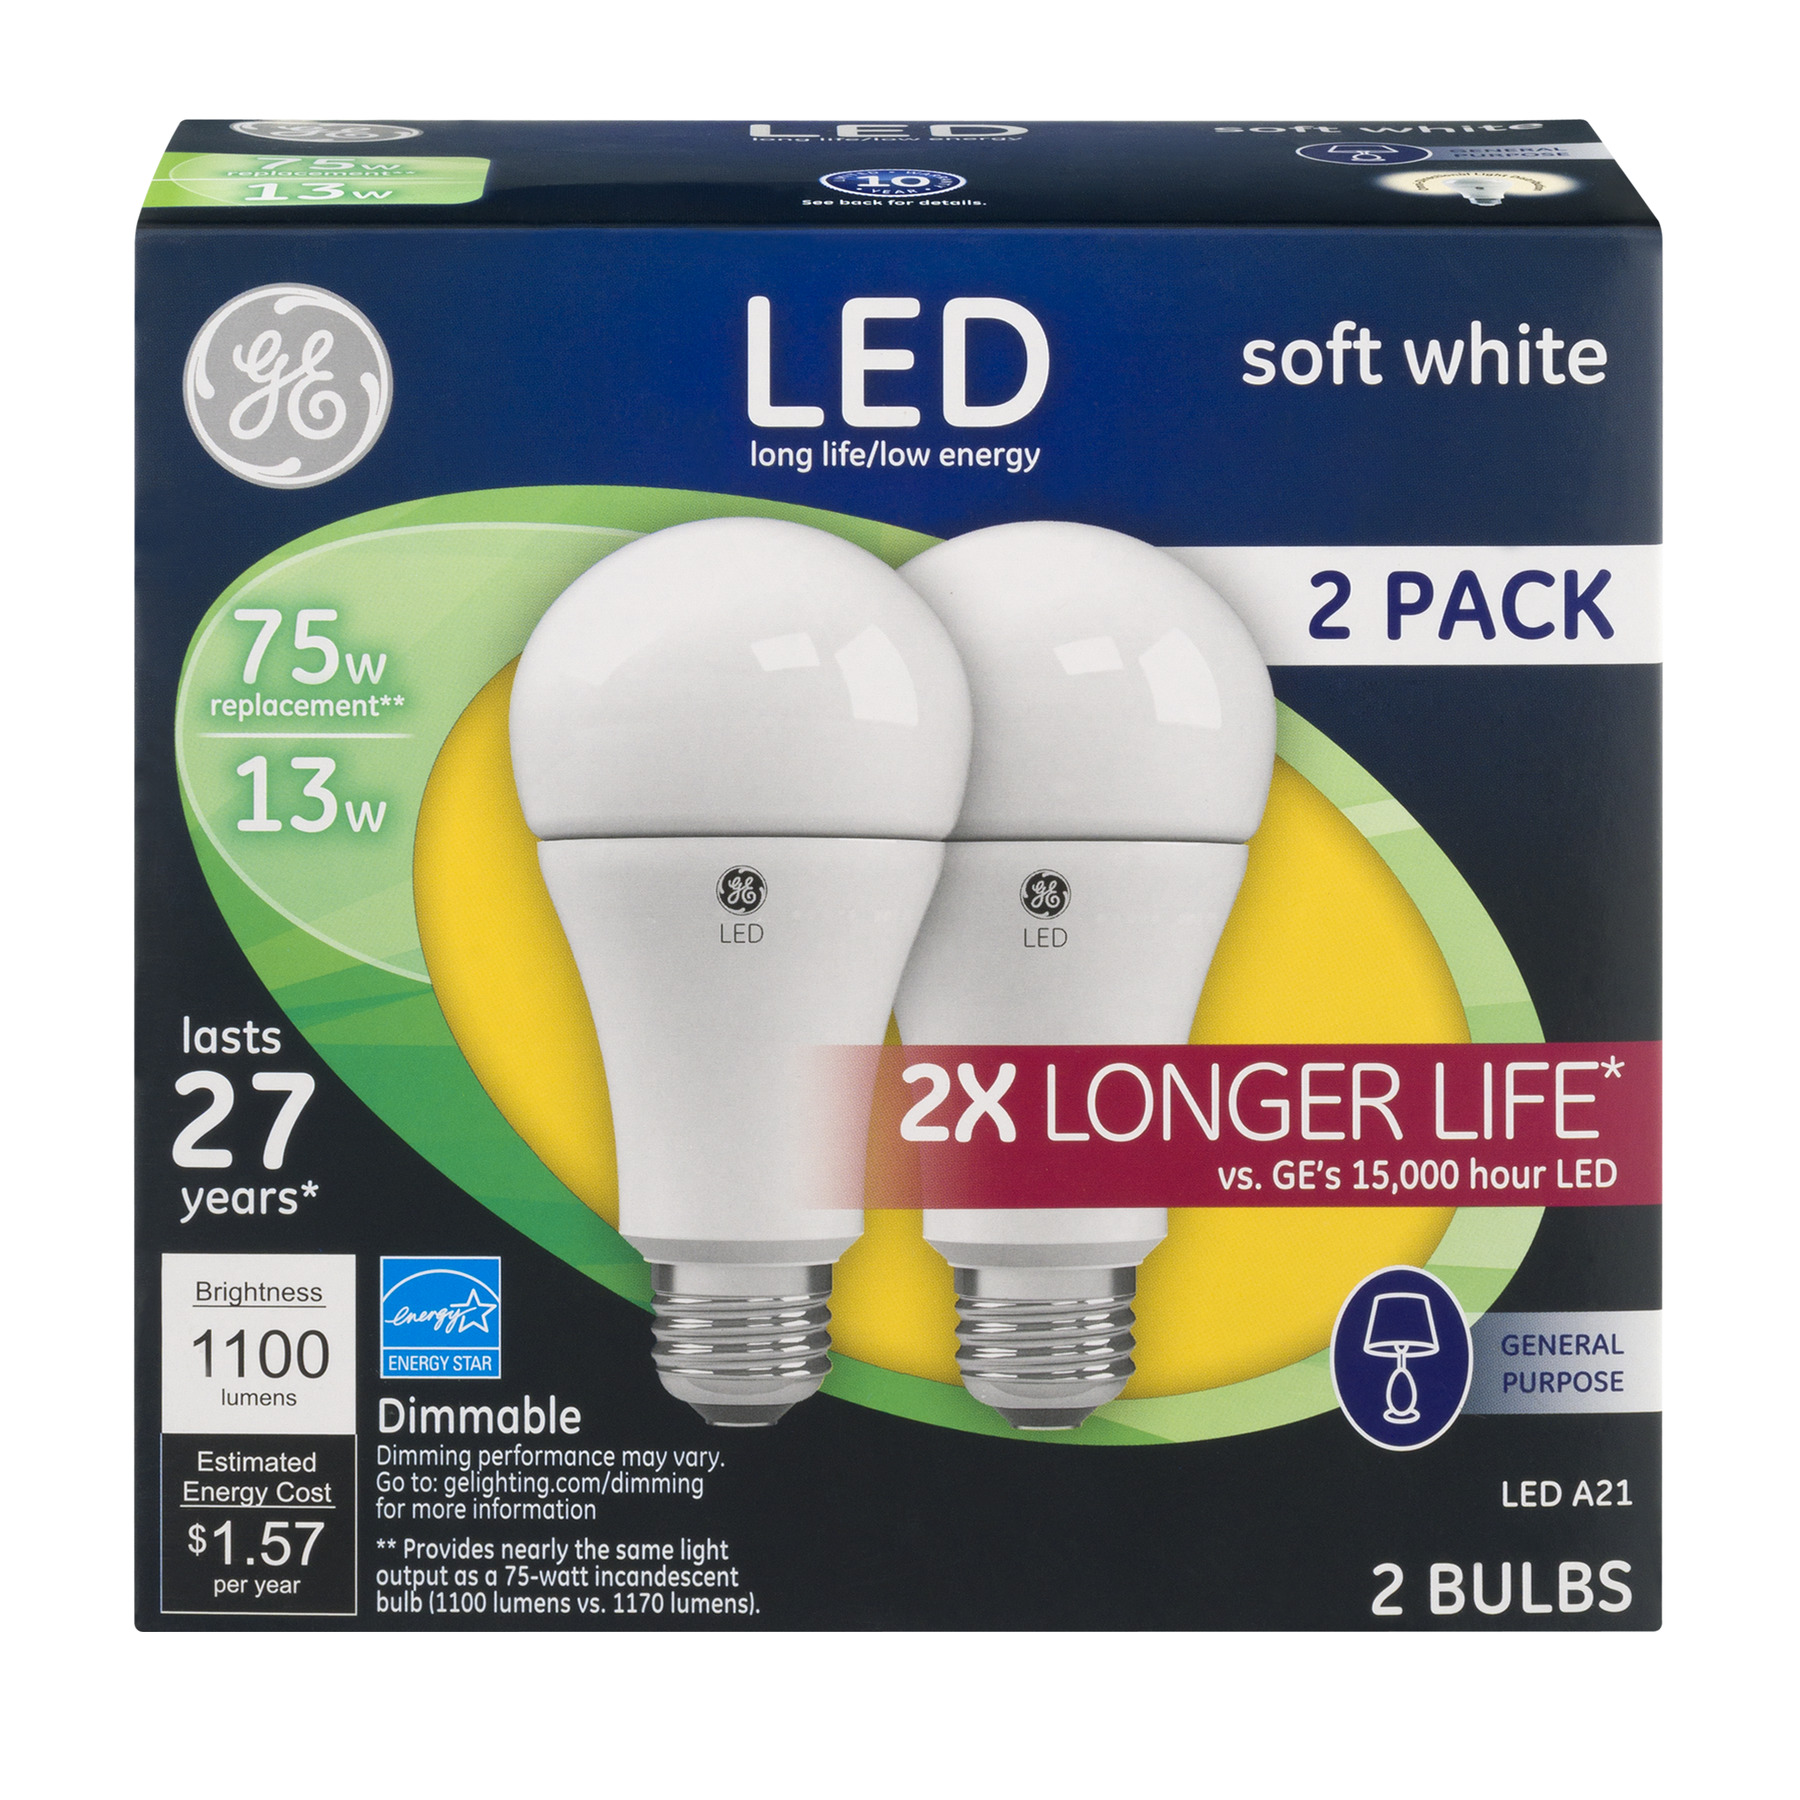 GE LED General Purpose Bulbs 75 W Soft White, 2.0 PACK